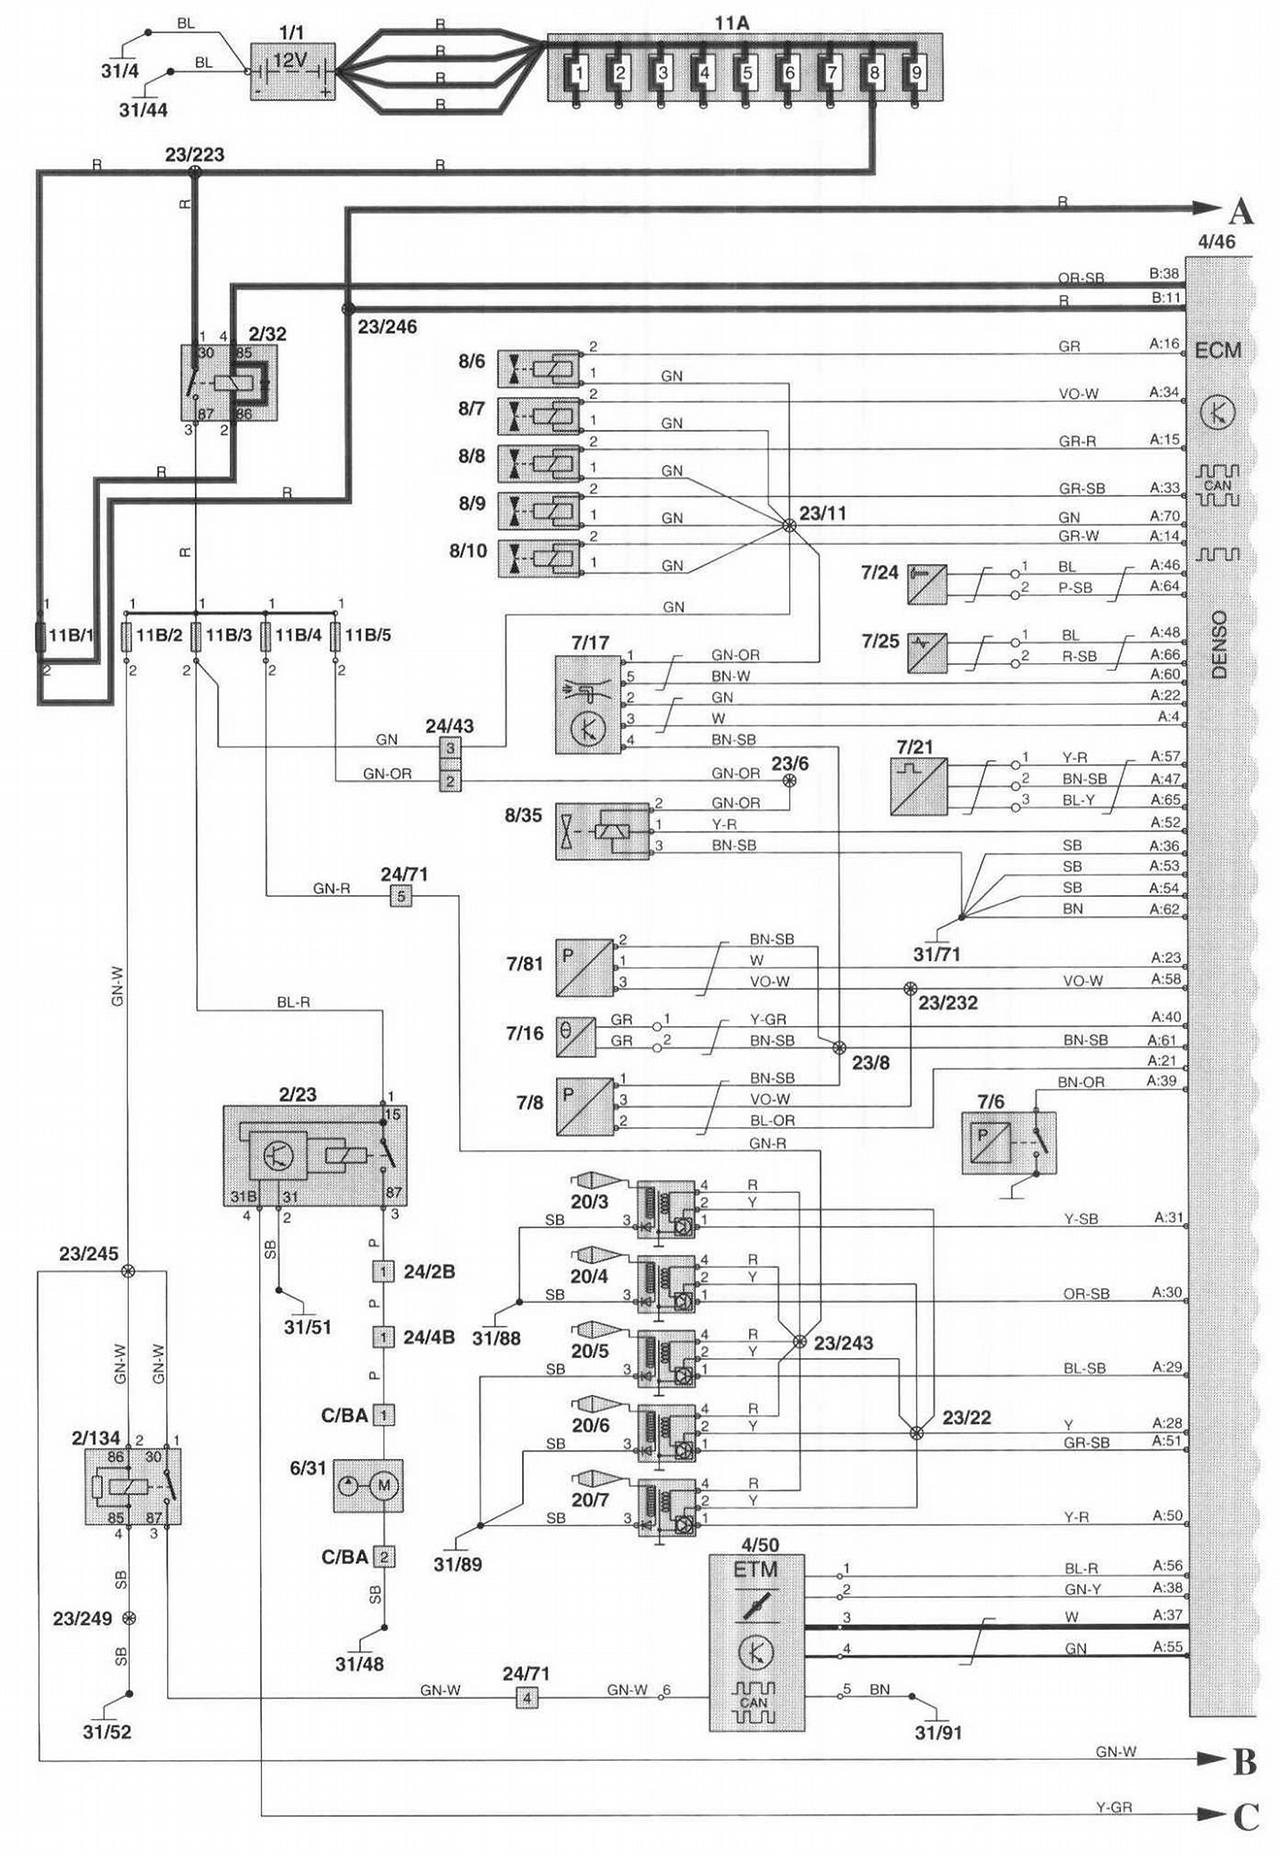 Volvo V70 Tail Light Wiring Diagram Just Wirings Engine Diagrams Schematic Rh Theodocle Fion Com 240 Fuse Awd Problems